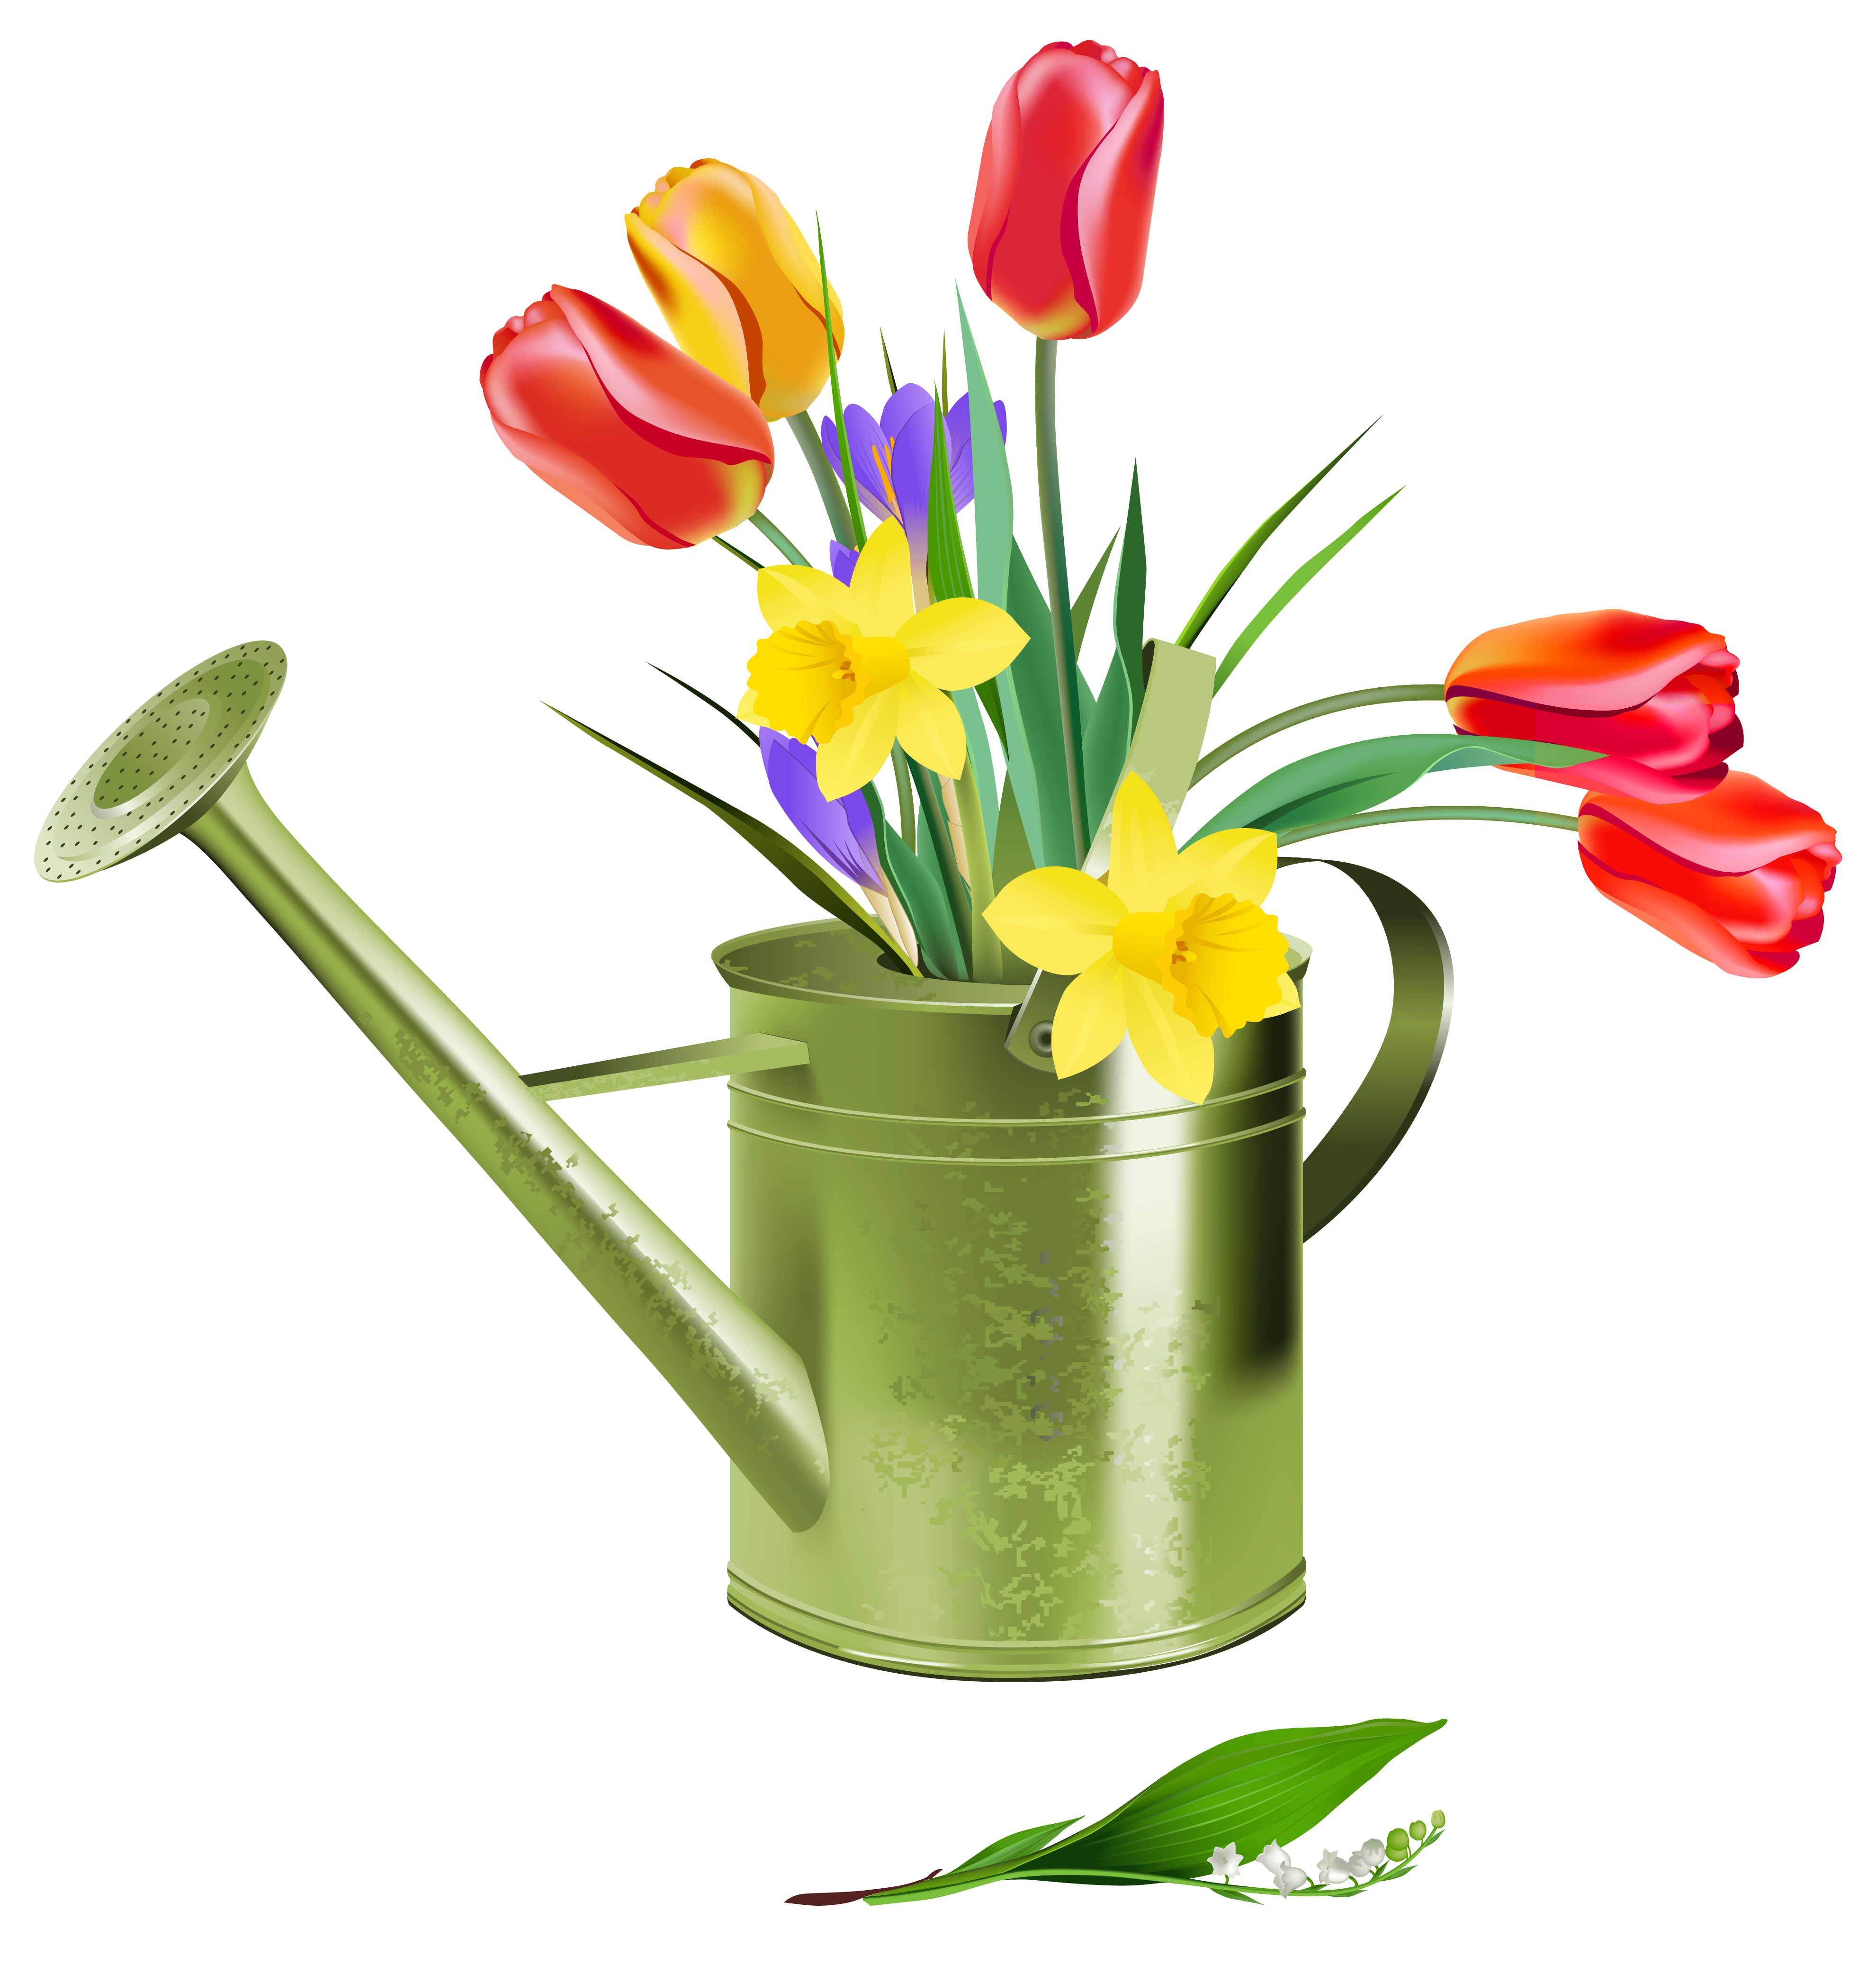 Spring flower clipart png. Green watering can with